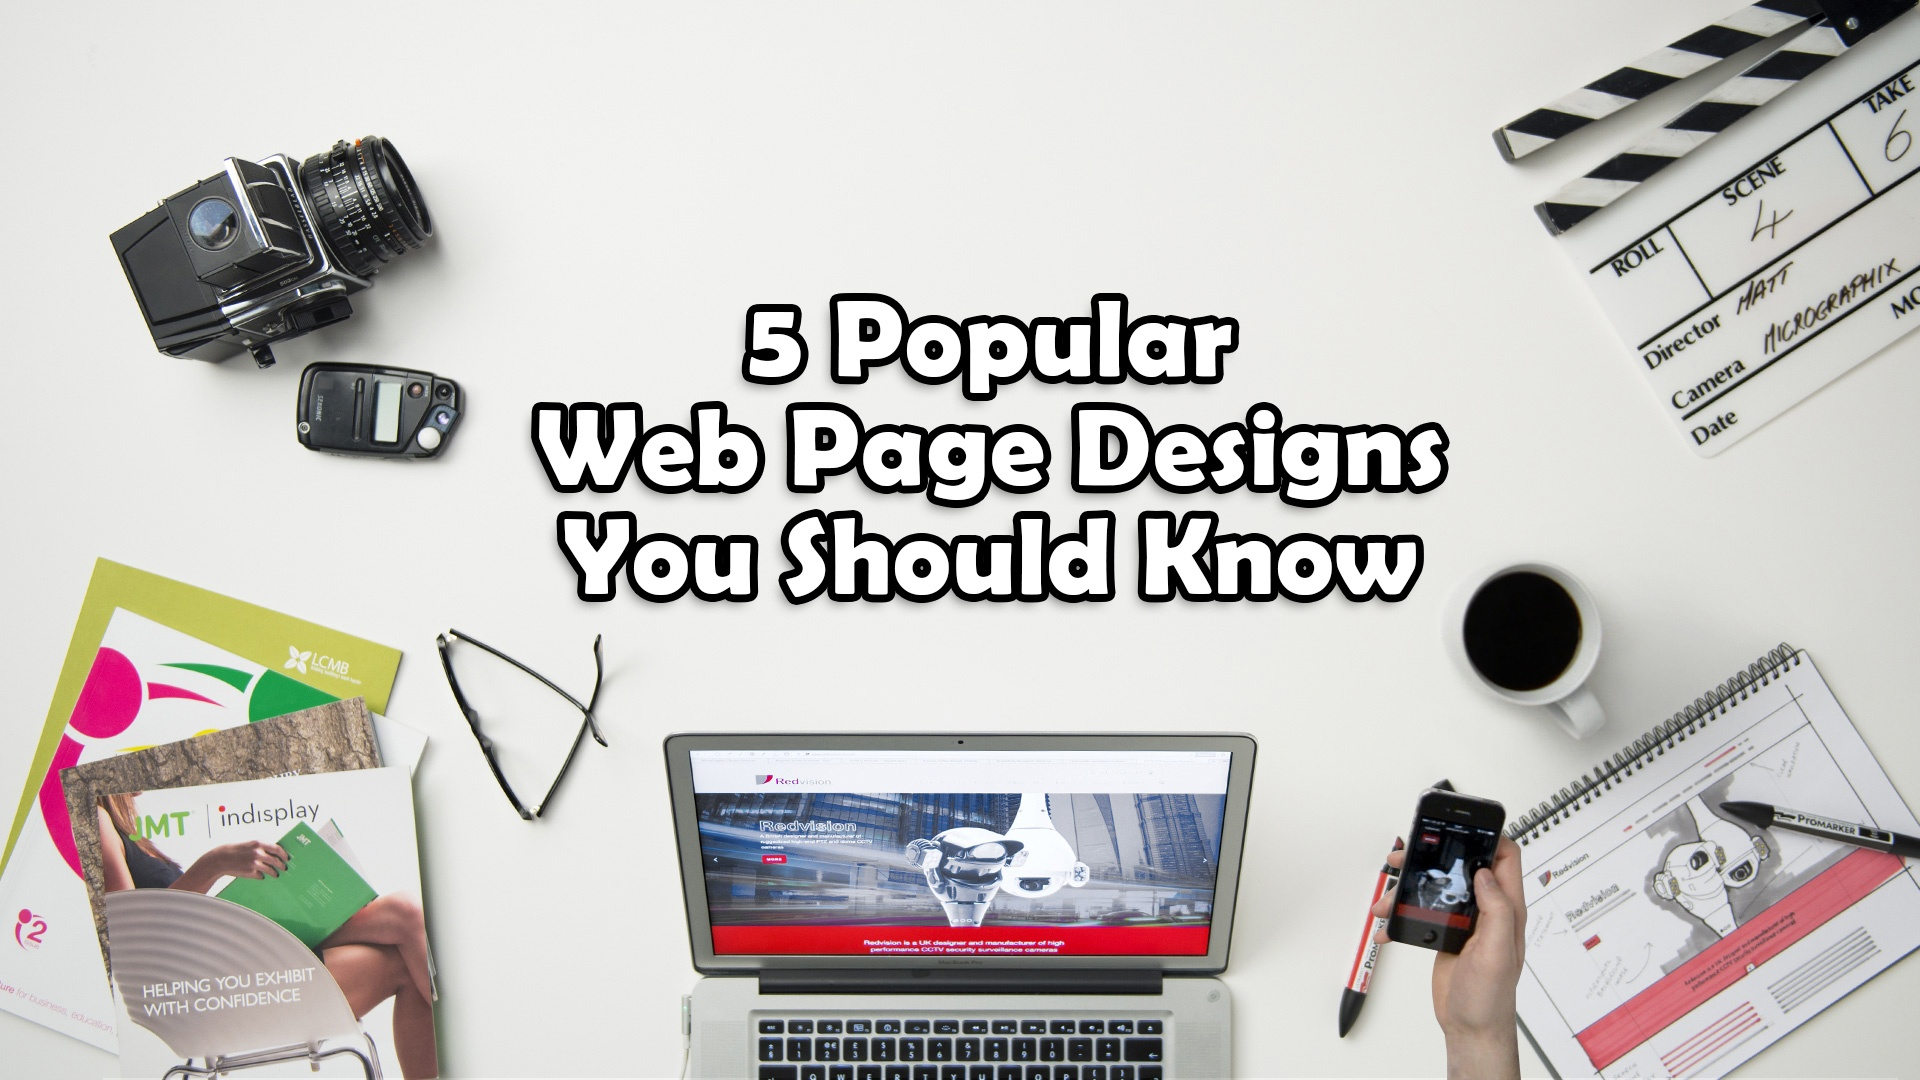 5 Popular Web Page Designs You Should Know